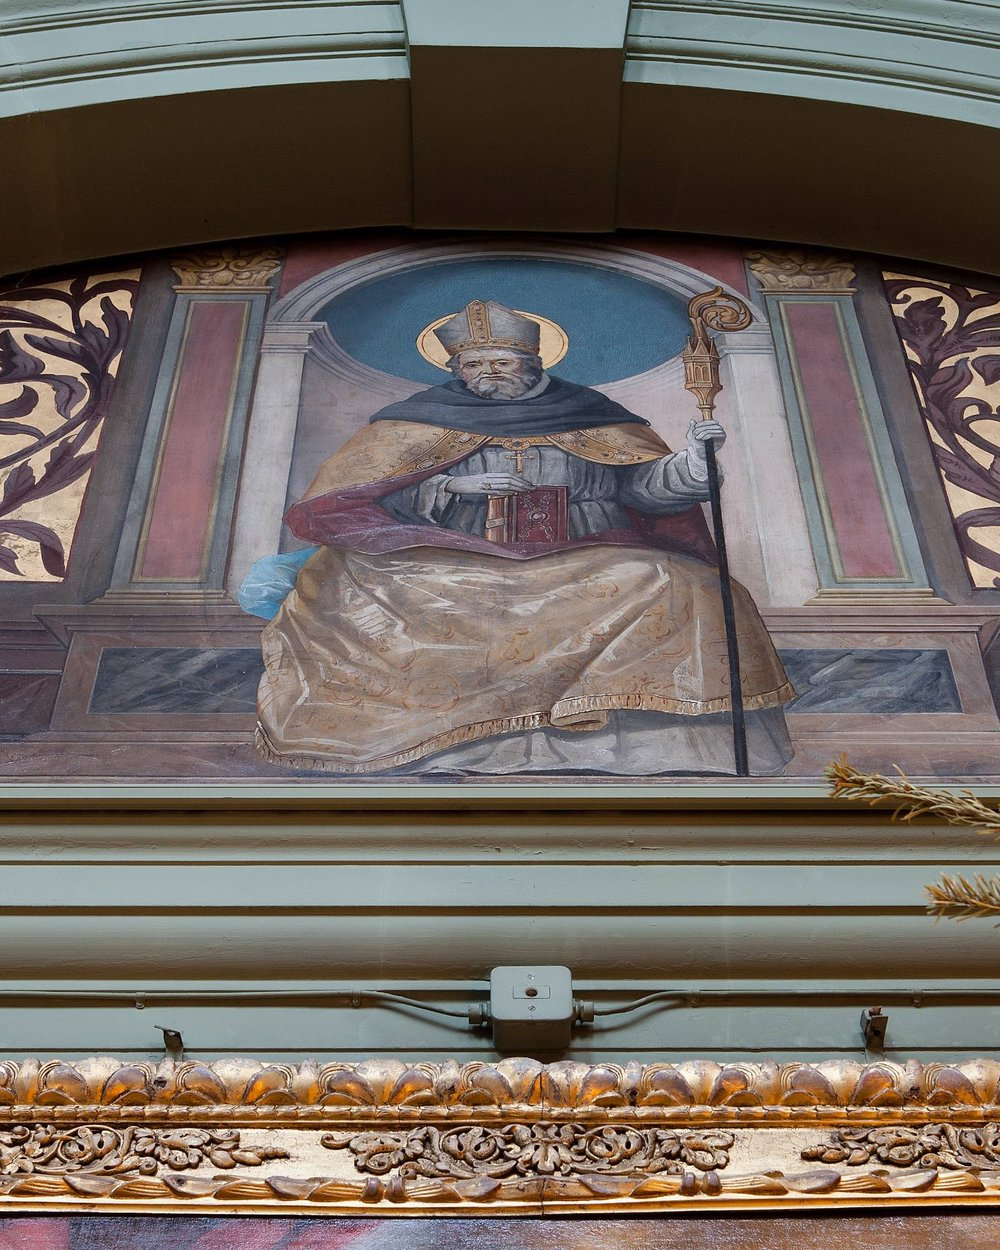 St. Augustine - Born in Thagaste, in Roman North Africa in 354, the story of St. Augustine's life is that of a ceaseless search for truth.  Initially turning his back on his mother's Christianity, he led a turbulent personal life before being re-converted and baptised by St. Ambrose in 387.  He was reluctantly ordained priest in 391 and bishop in 396.  His extensive doctrinal writings, letters and sermons (totalling more than five million words) have had a profound influence on the great theologians of subsequent centuries.  He died in 430 and his feast day is August 28th.